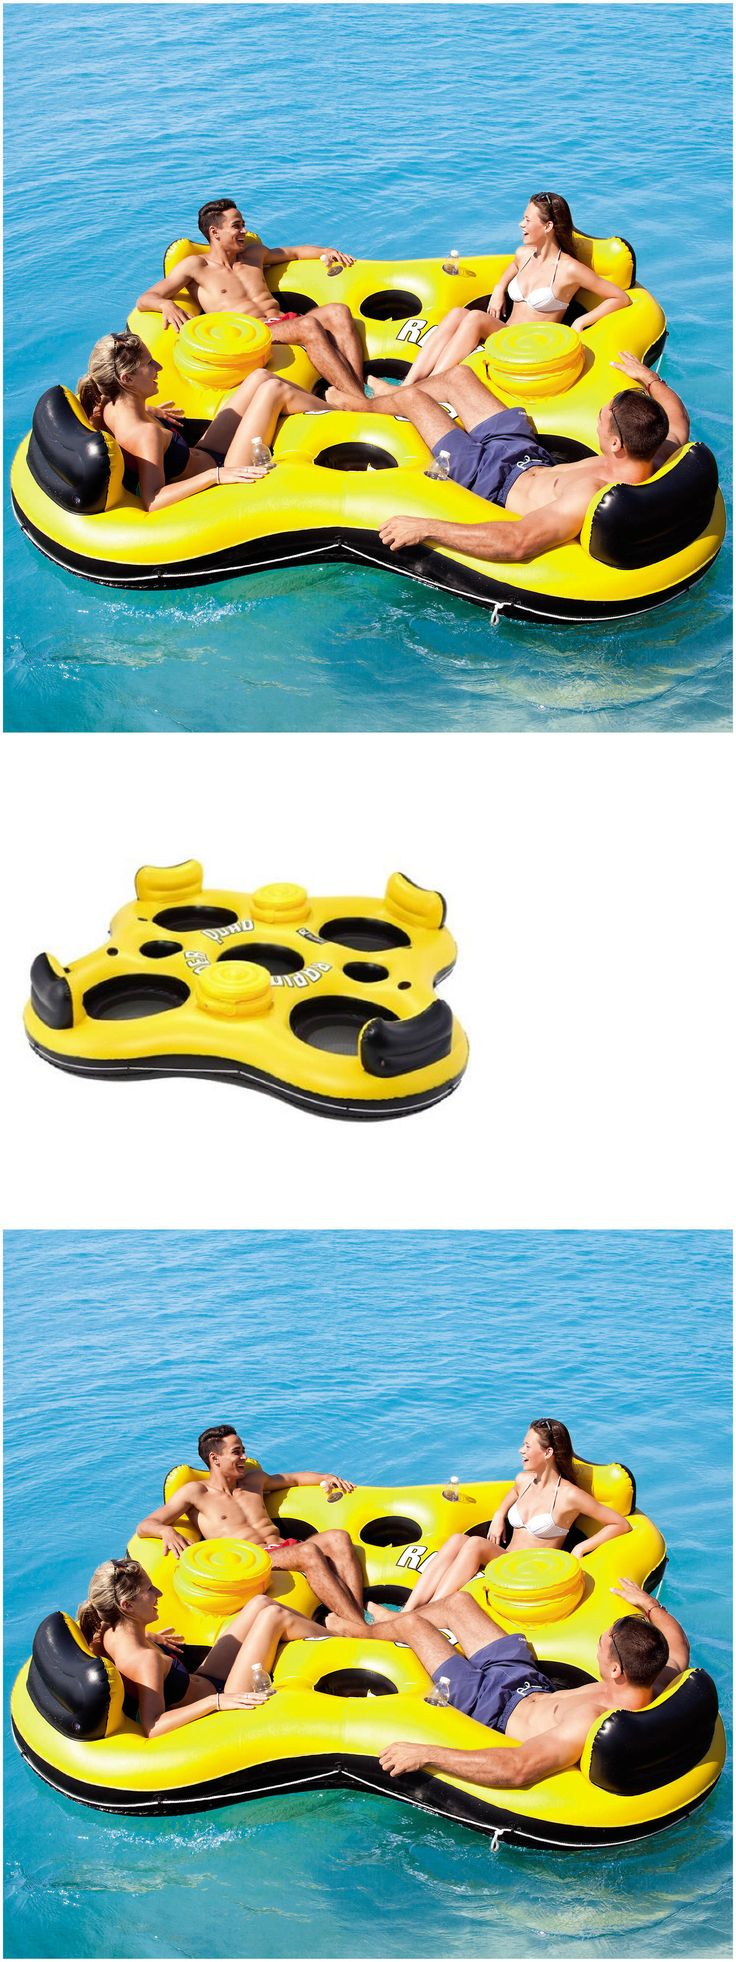 Lake Toys For Boys : Best ideas about inflatable island on pinterest